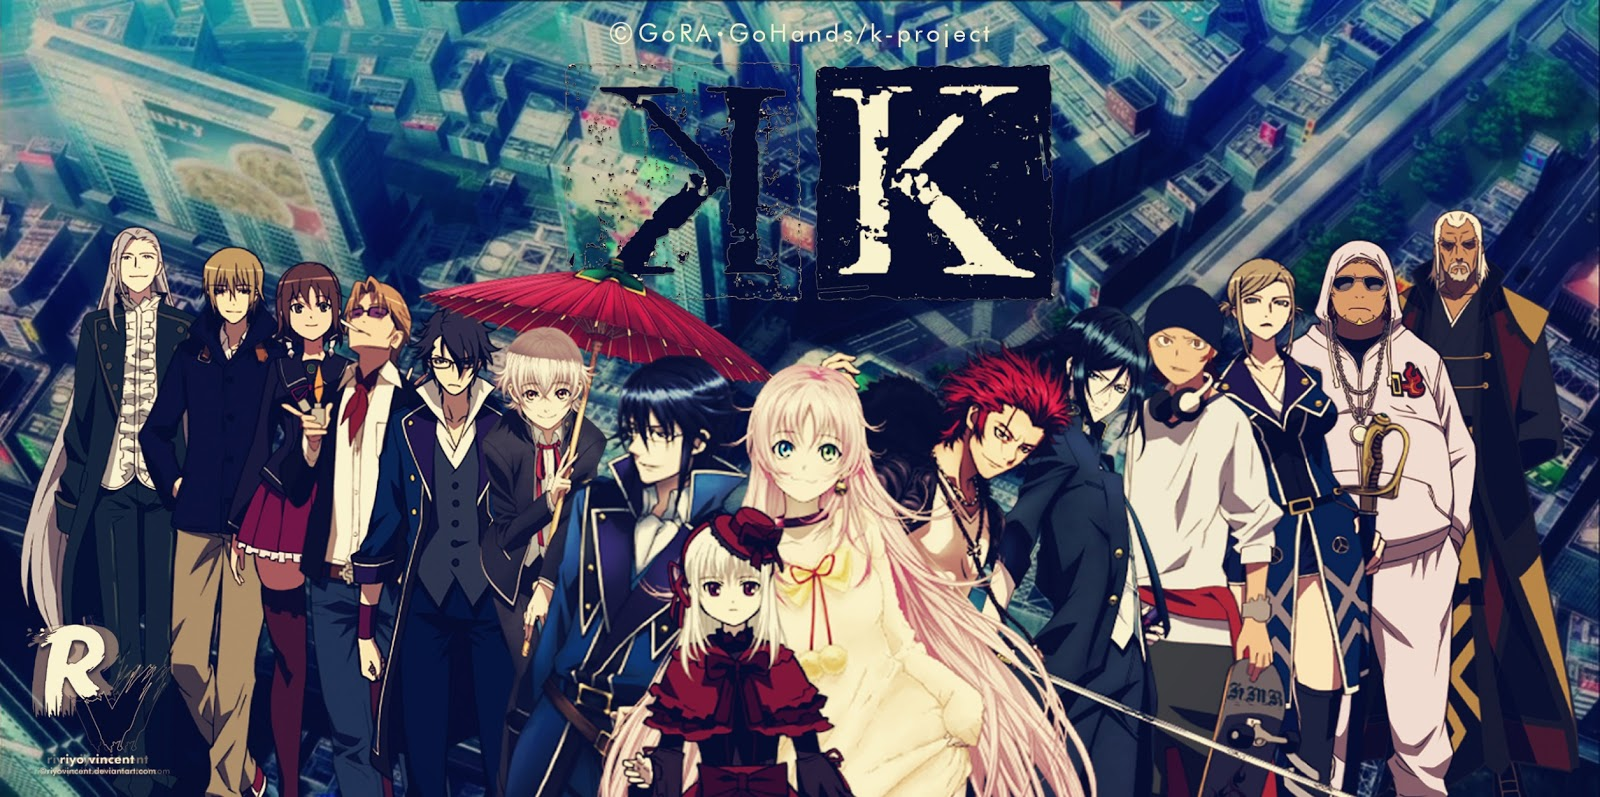 k__project_k_wallpaper__by_riyovincent-d5pf5re.jpg